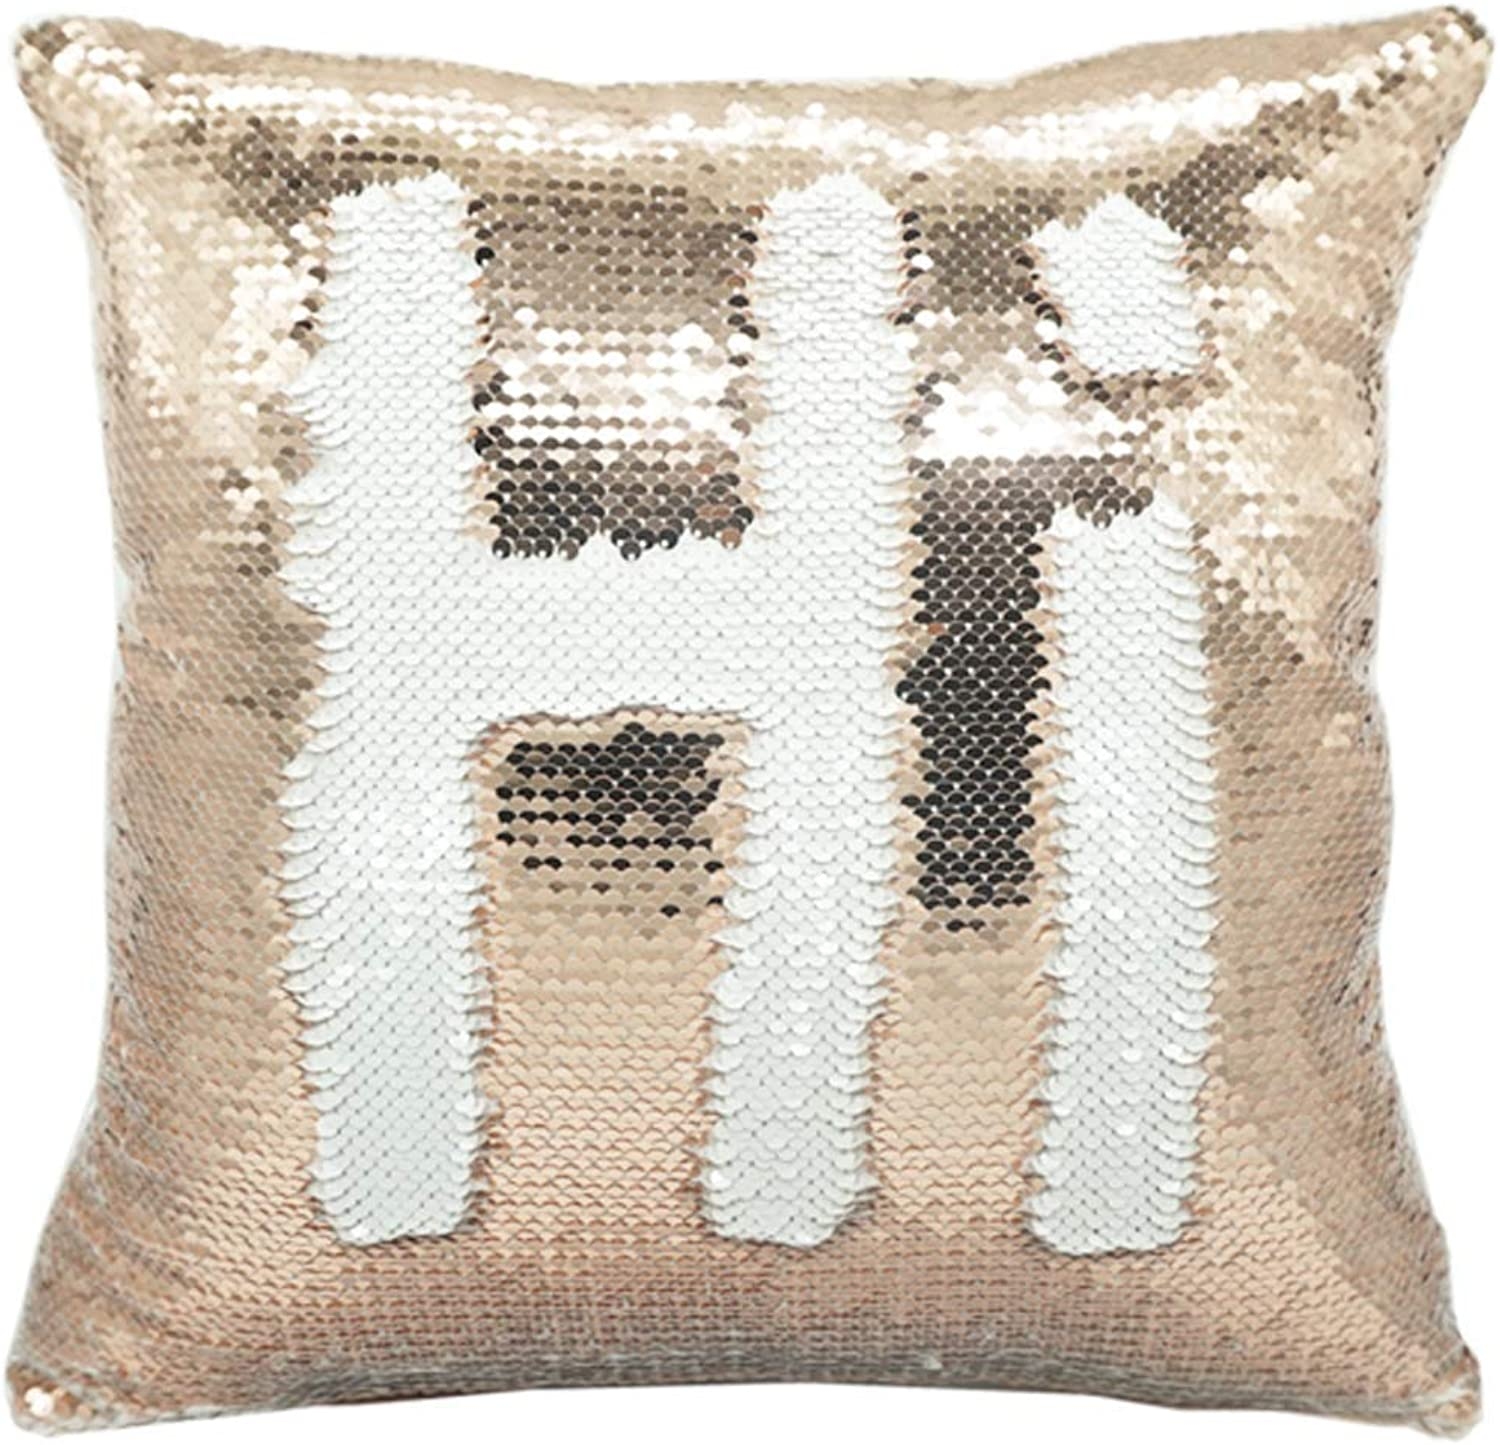 Sublimation Blank Pillow Covers 16inx16in Reversible Sequin Magic Swipe Pillow Cases Cushion Cover 10pcs (Champagne)